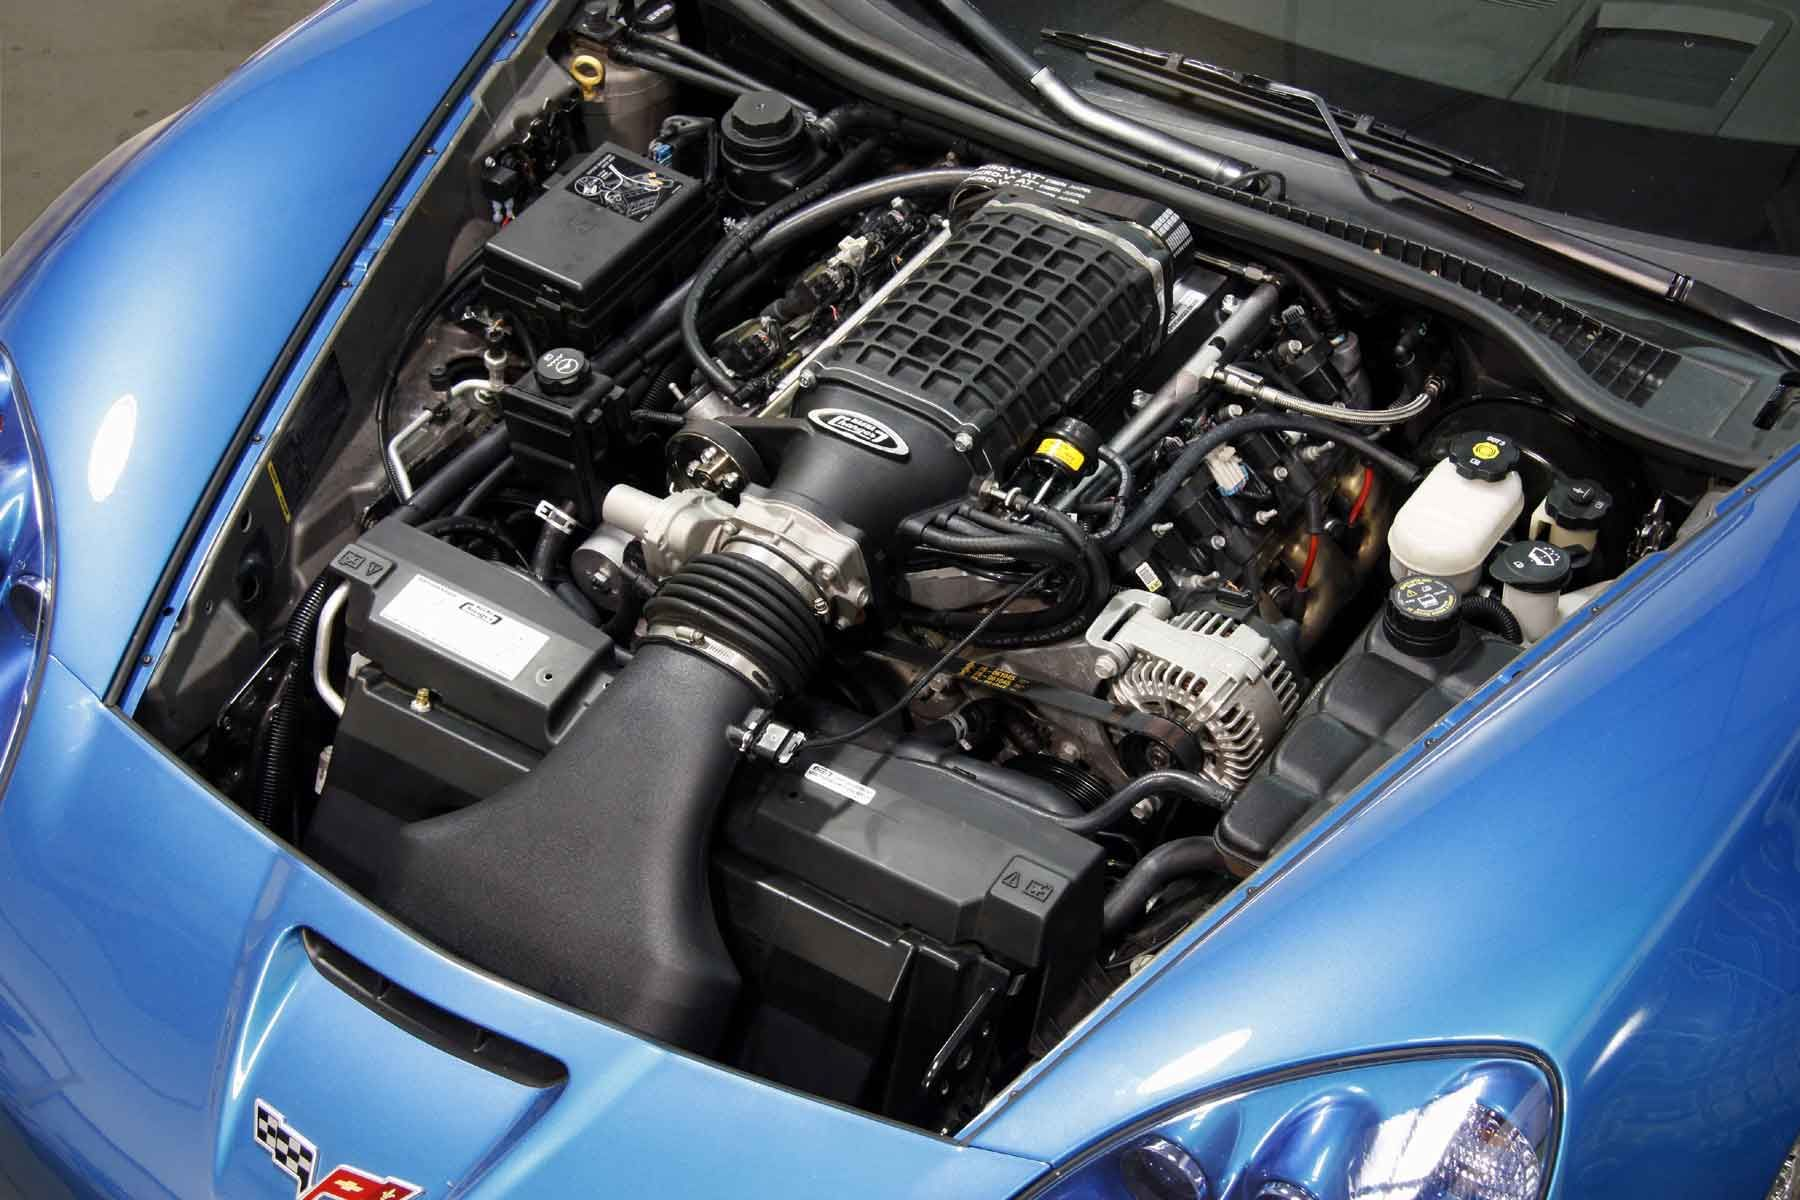 C5 Zo6 Supercharger Build Your Own Zr1 With Magna Charger S Z06